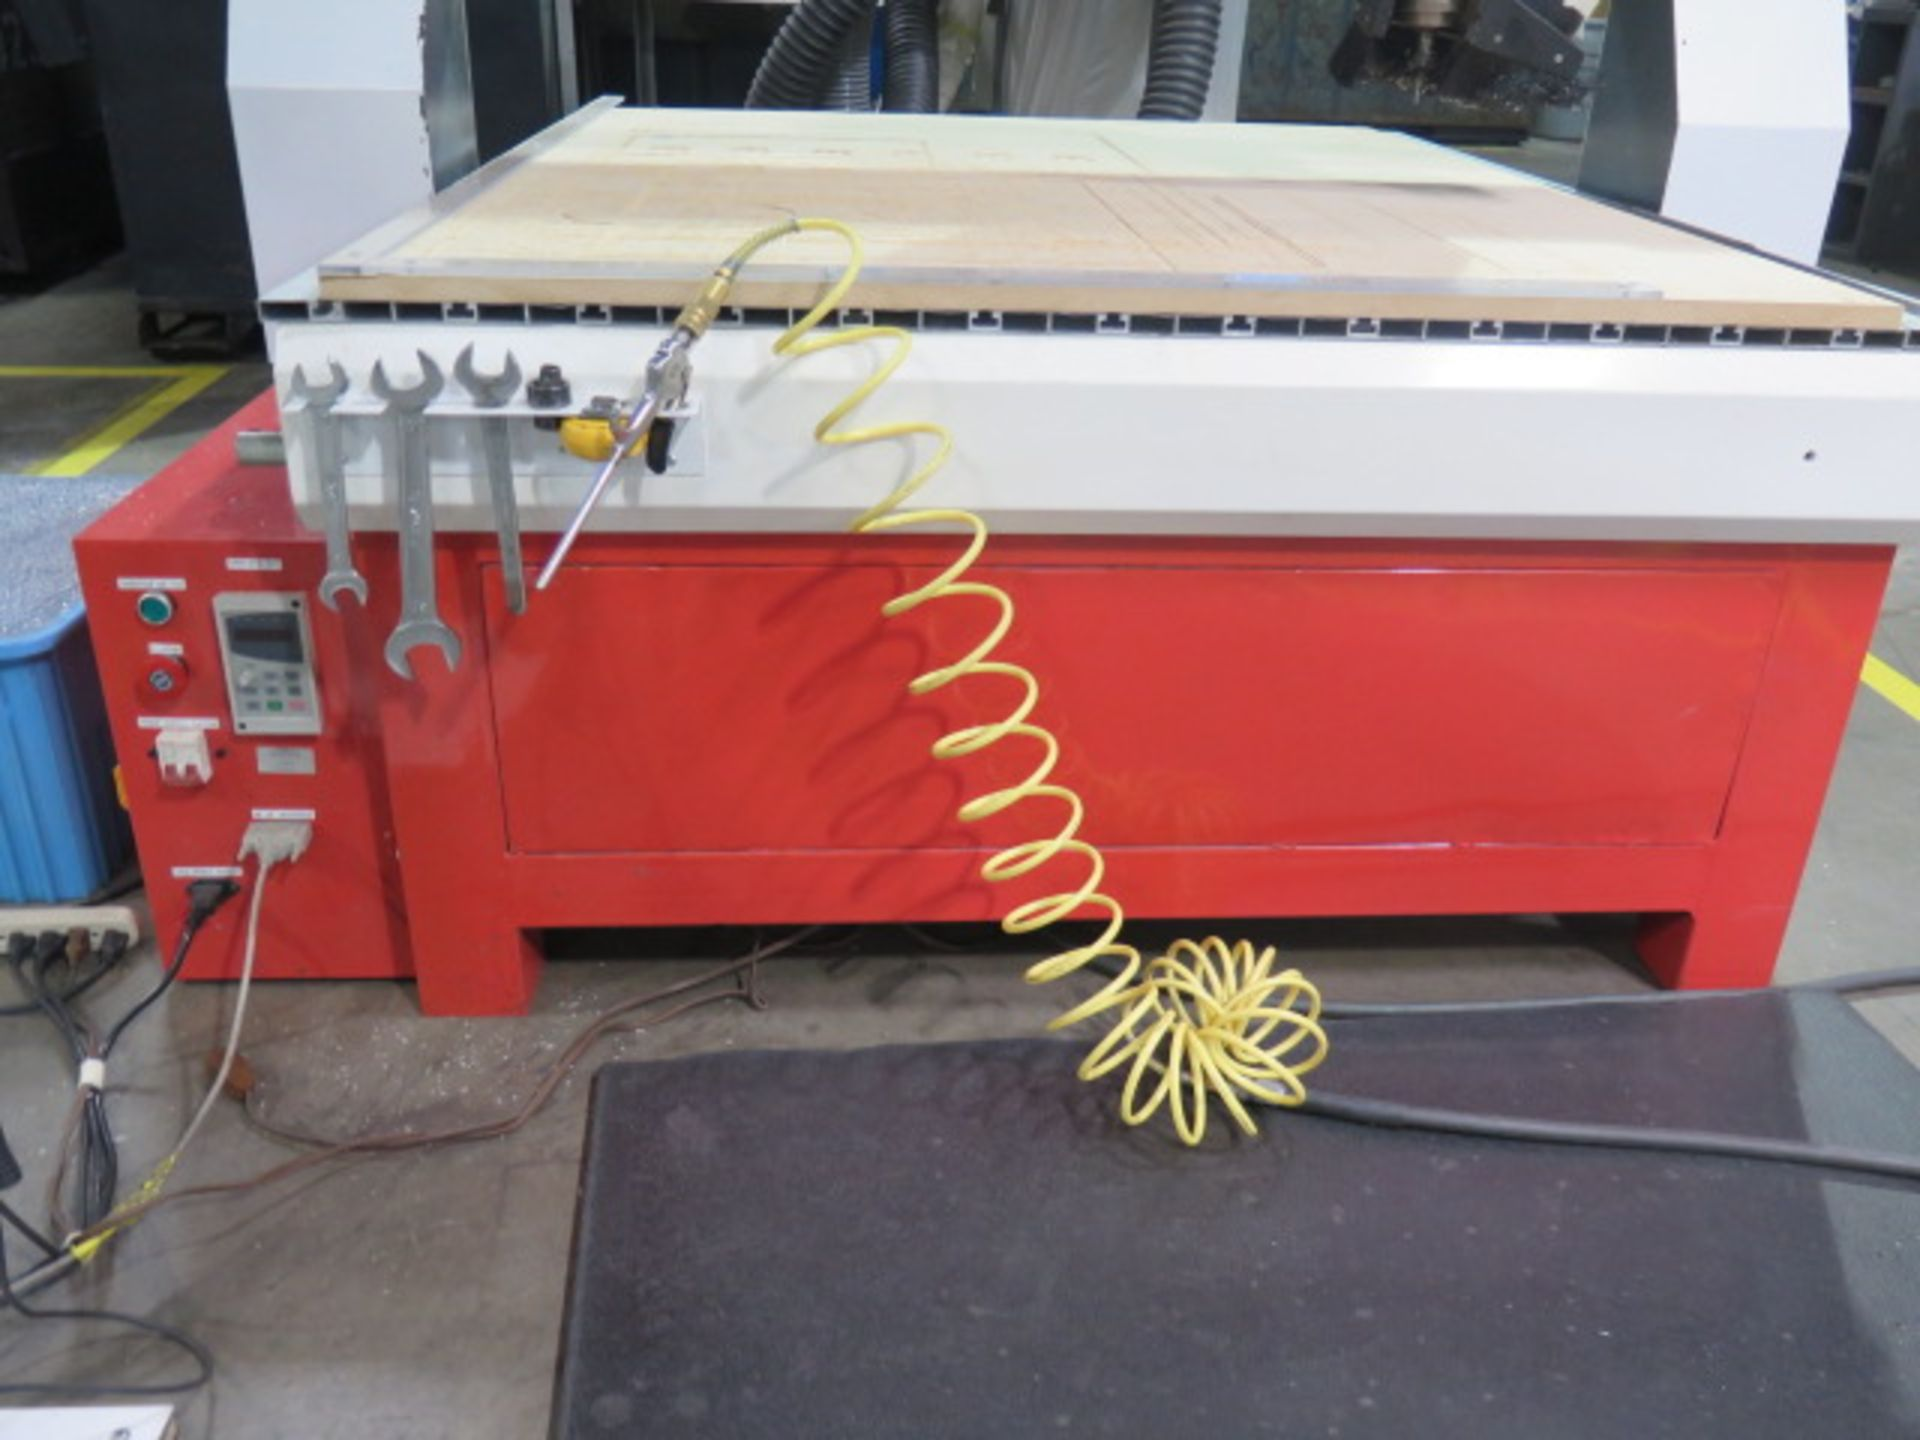 """Industrial CNC """"Mach 3"""" 48"""" x 48"""" Pro Series CNC Router w/ """"Mach 3"""" System Software, 48"""" x 48"""" x 12"""" - Image 4 of 12"""